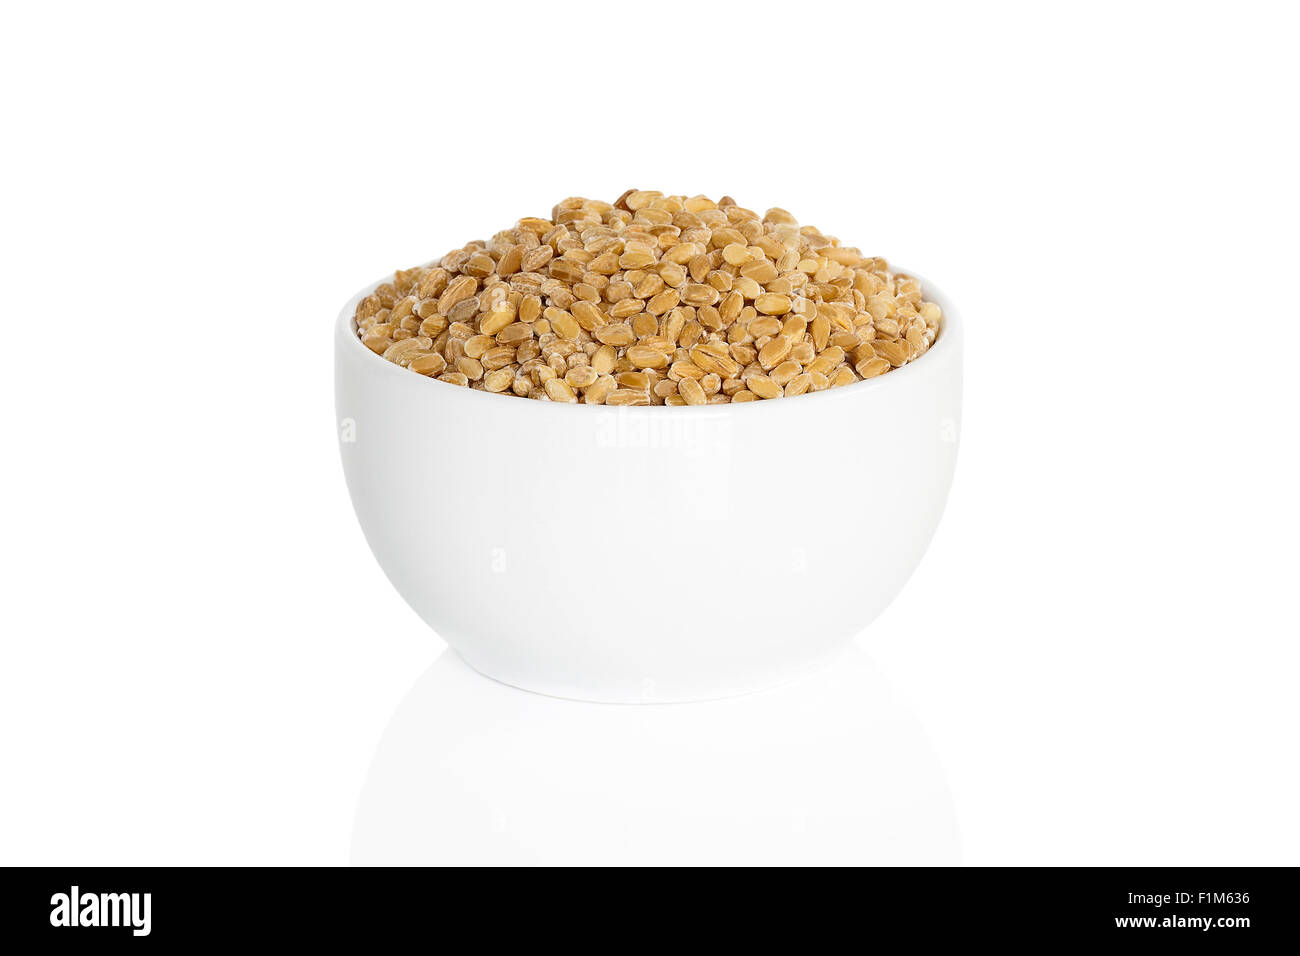 Pearl barley seeds in a cup isolated on a white background - Stock Image